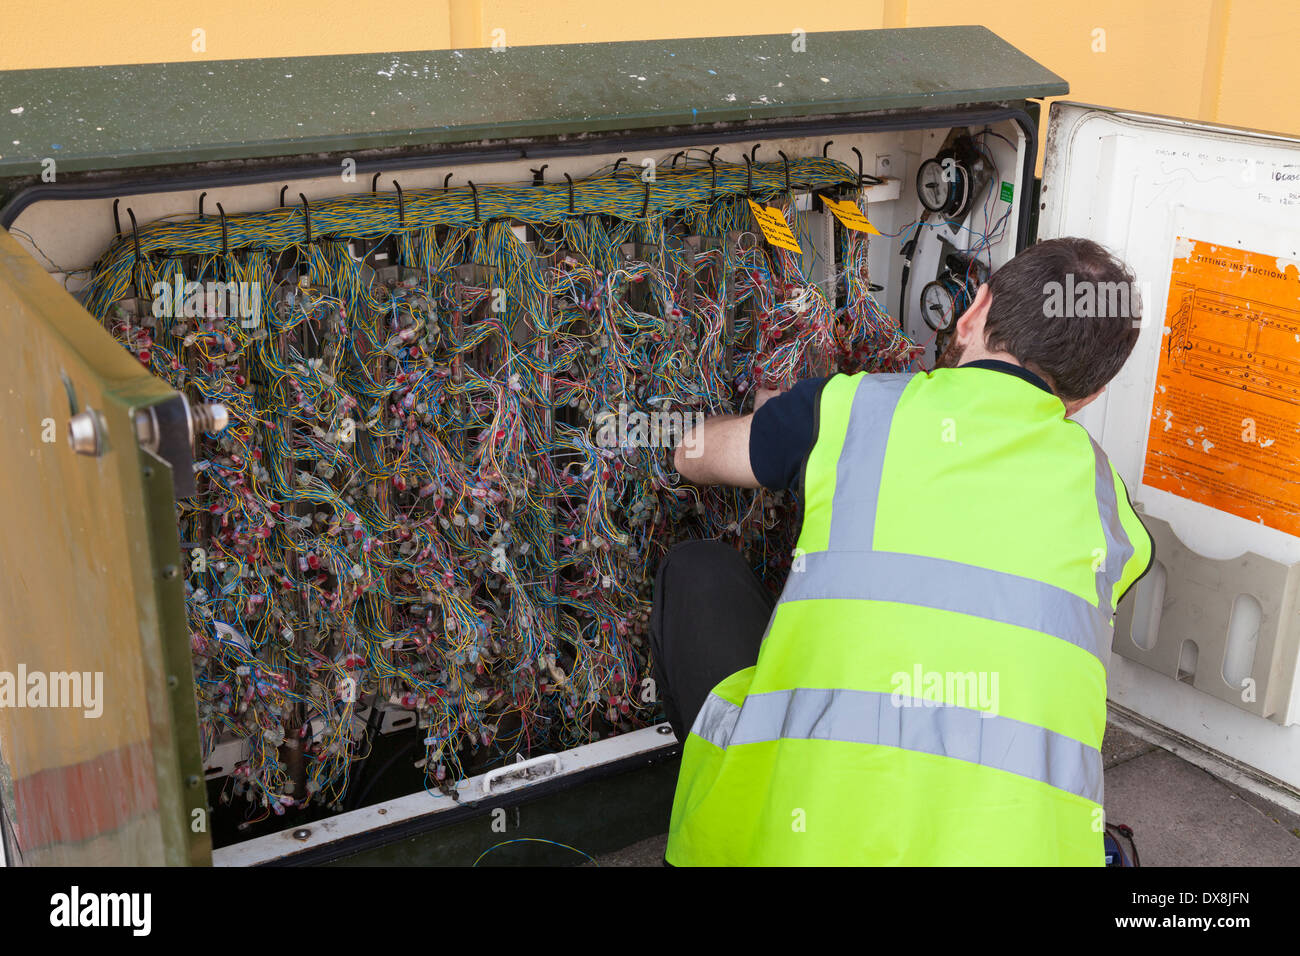 wiring stock photos wiring stock images alamy engineer working on bt street telephone wiring box stock image